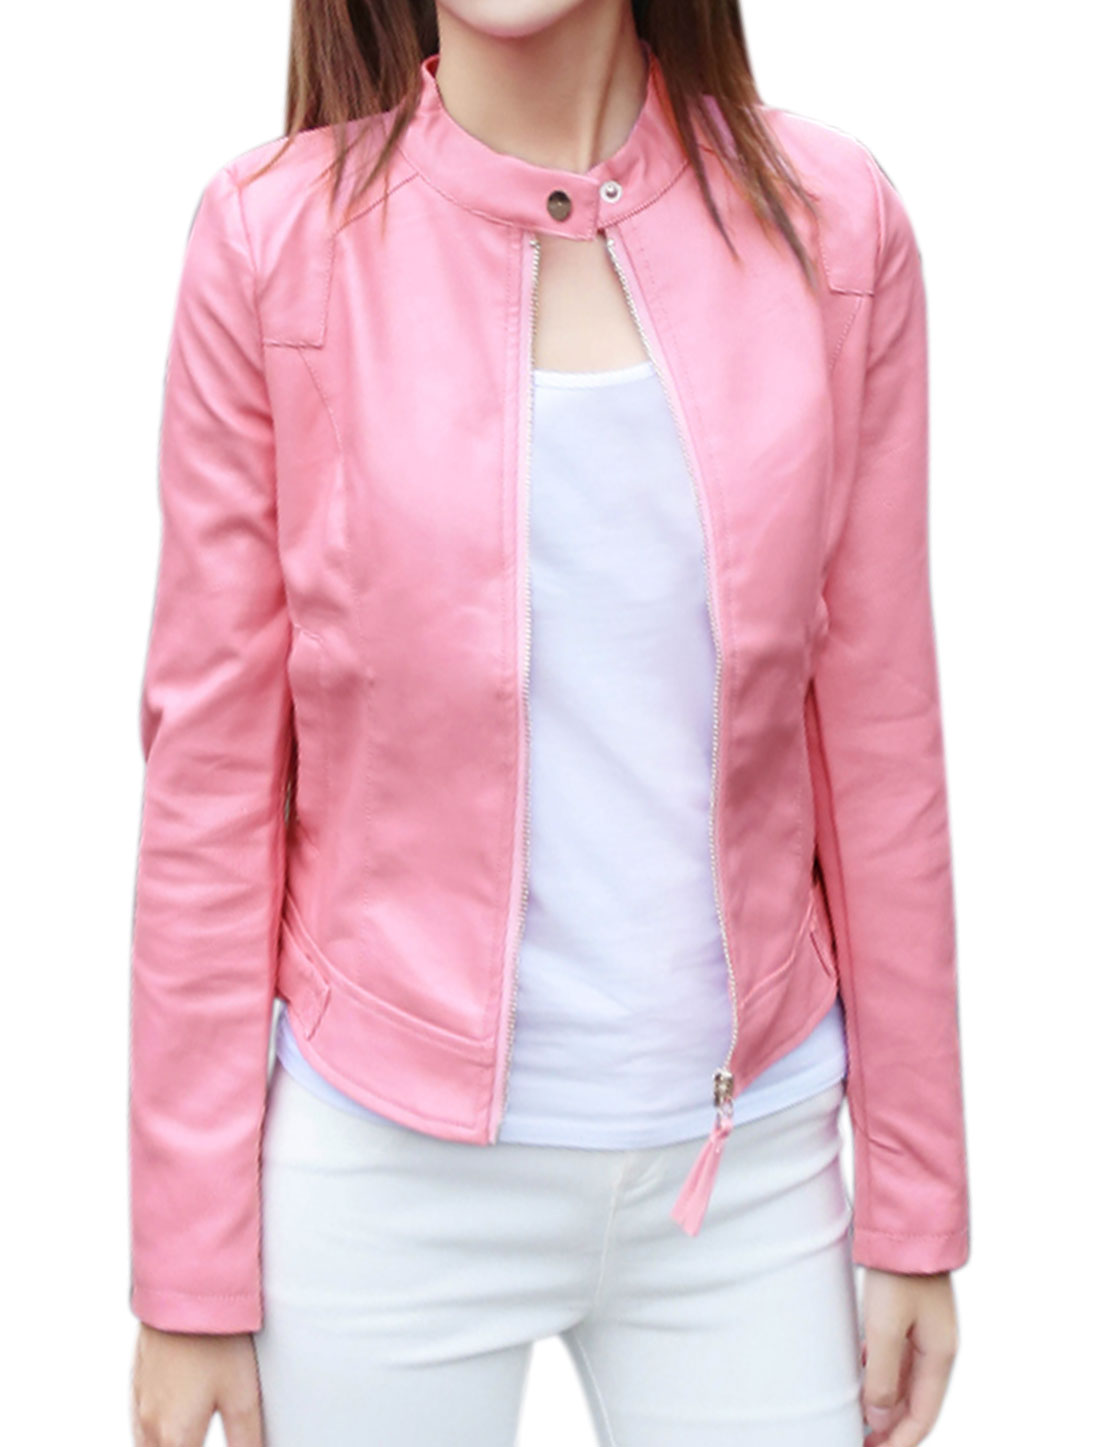 Women Stand Collar Zip Closed Slim Fit PU Jacket Pink S